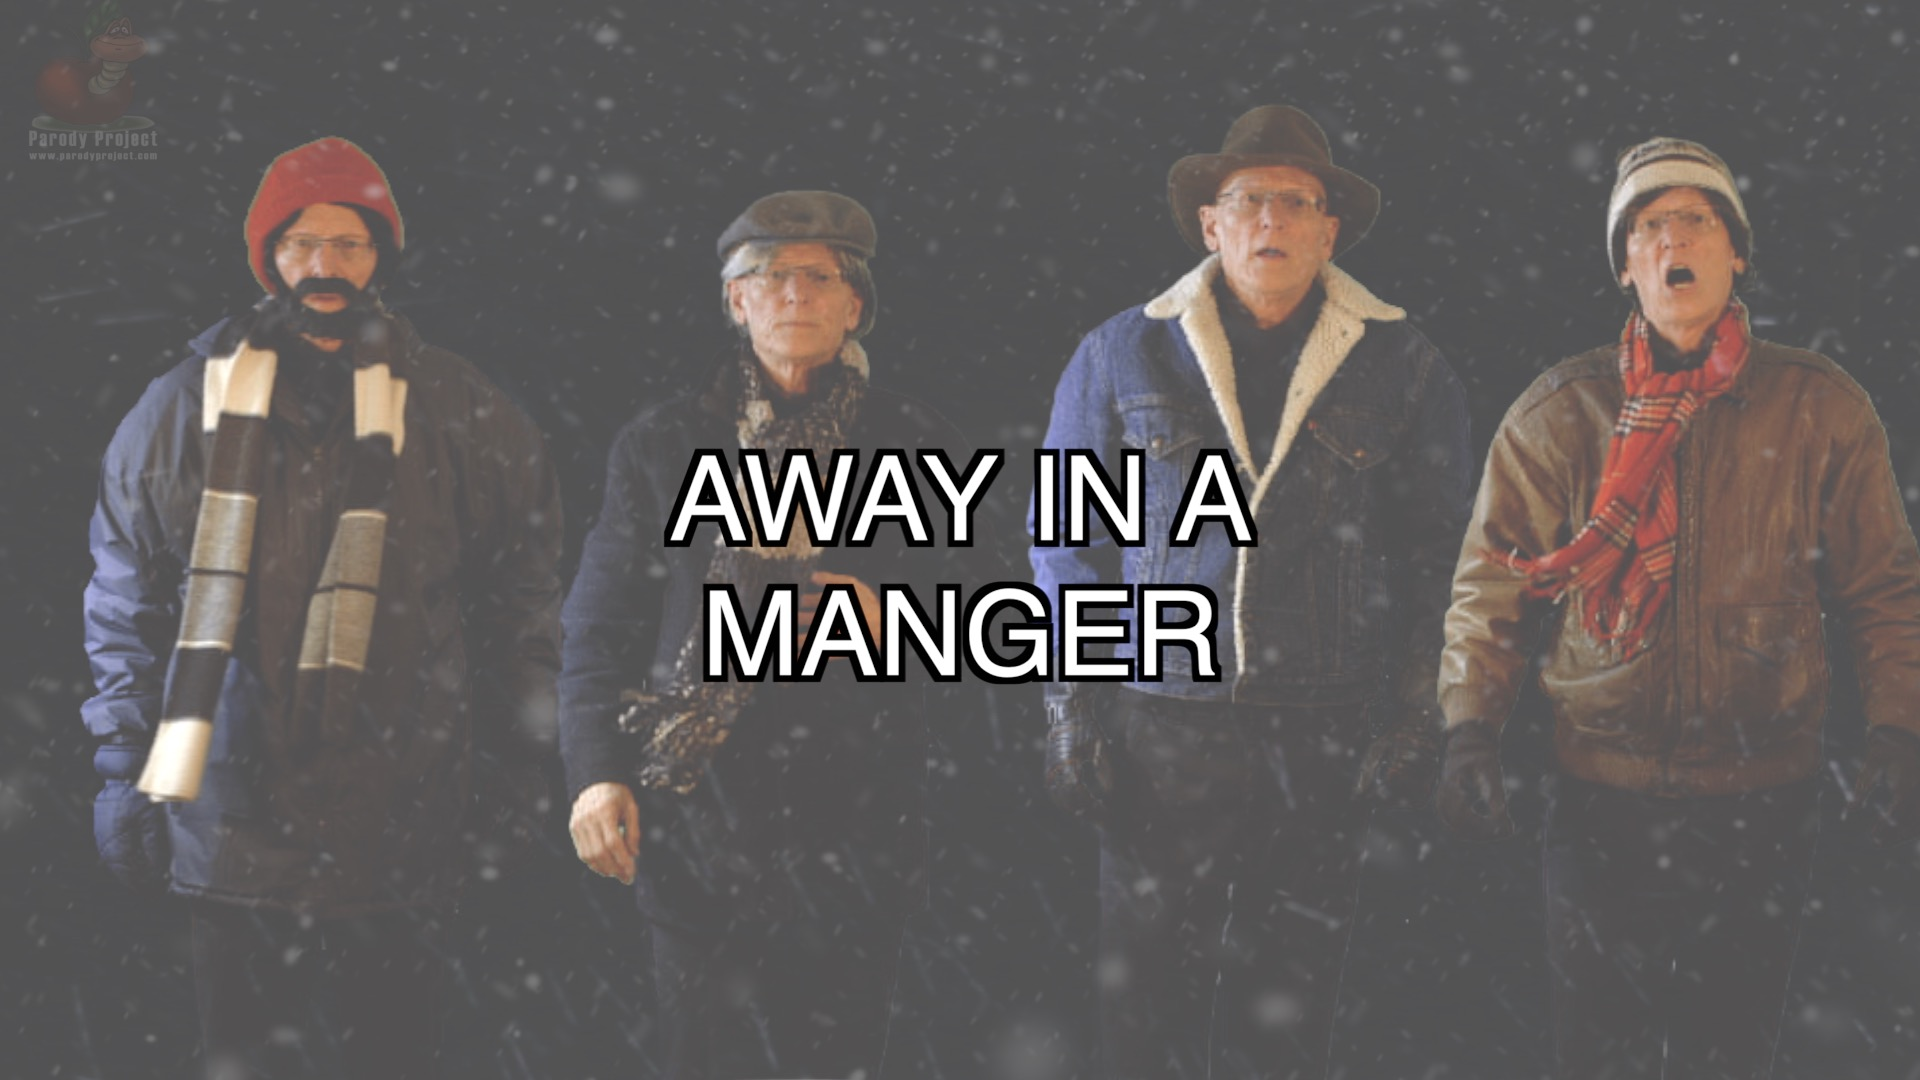 AWAY IN A MANGER (Modified to Reflect Current Events)